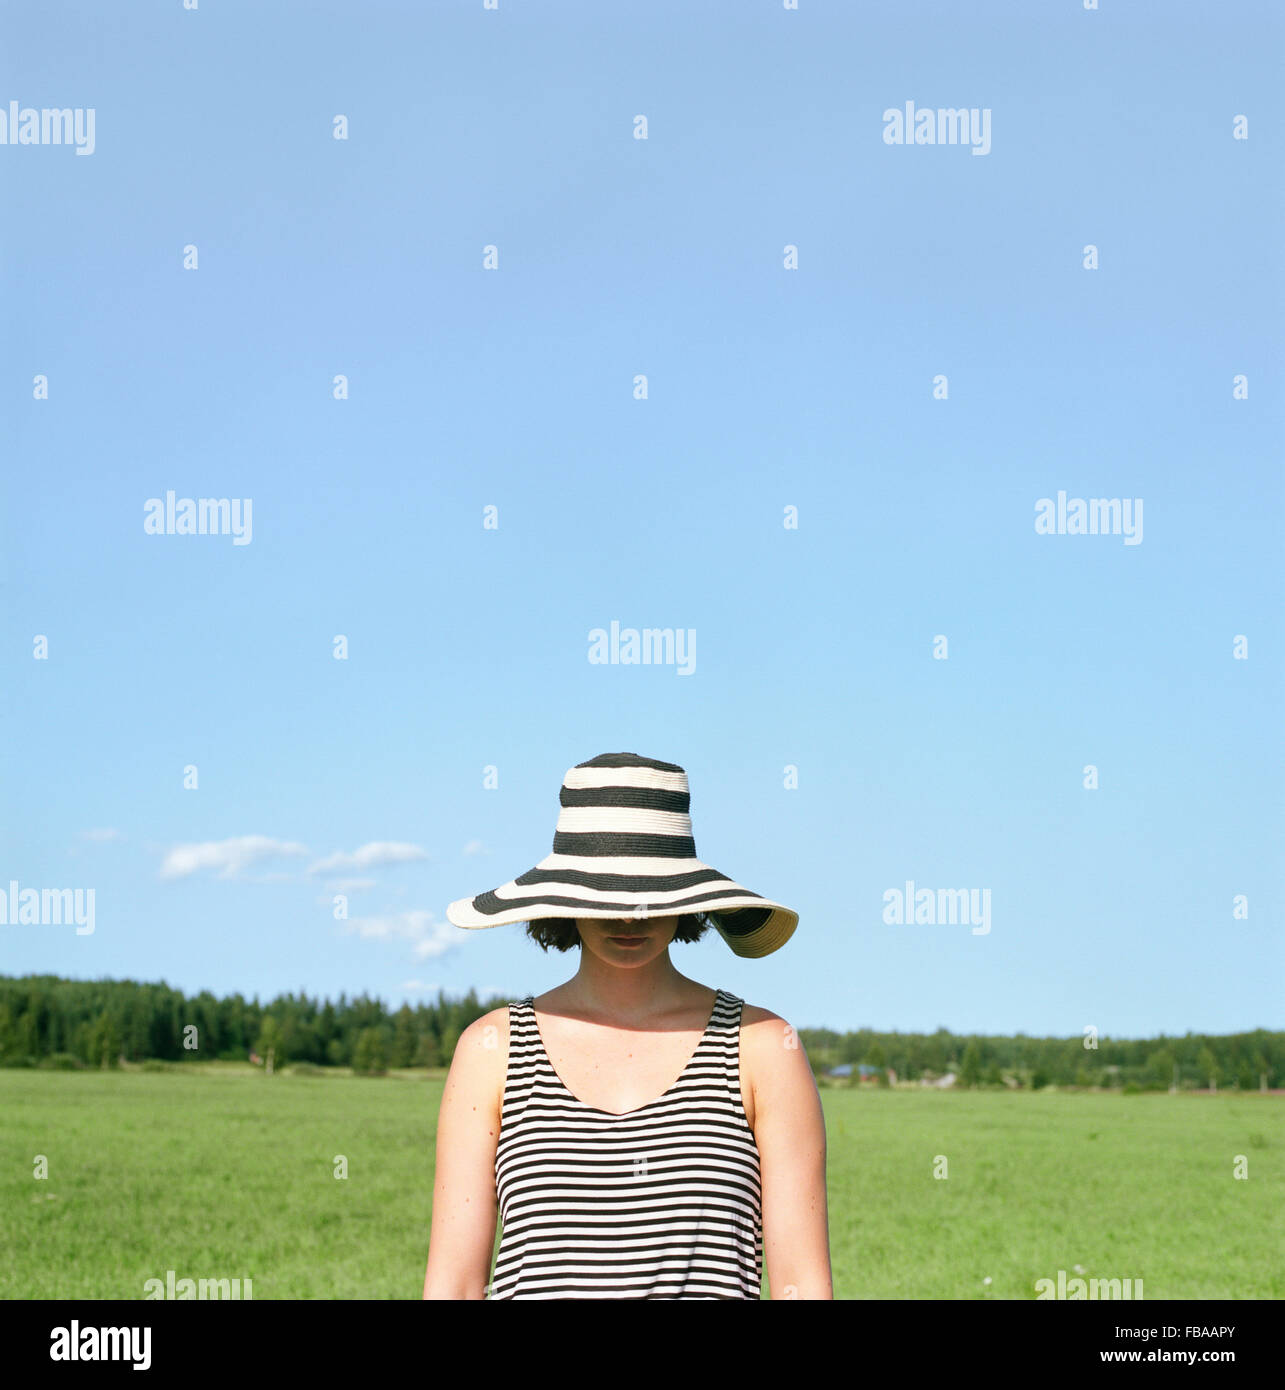 Finland, Uusimaa, Lapinjarvi, Woman wearing hat covering her face - Stock Image